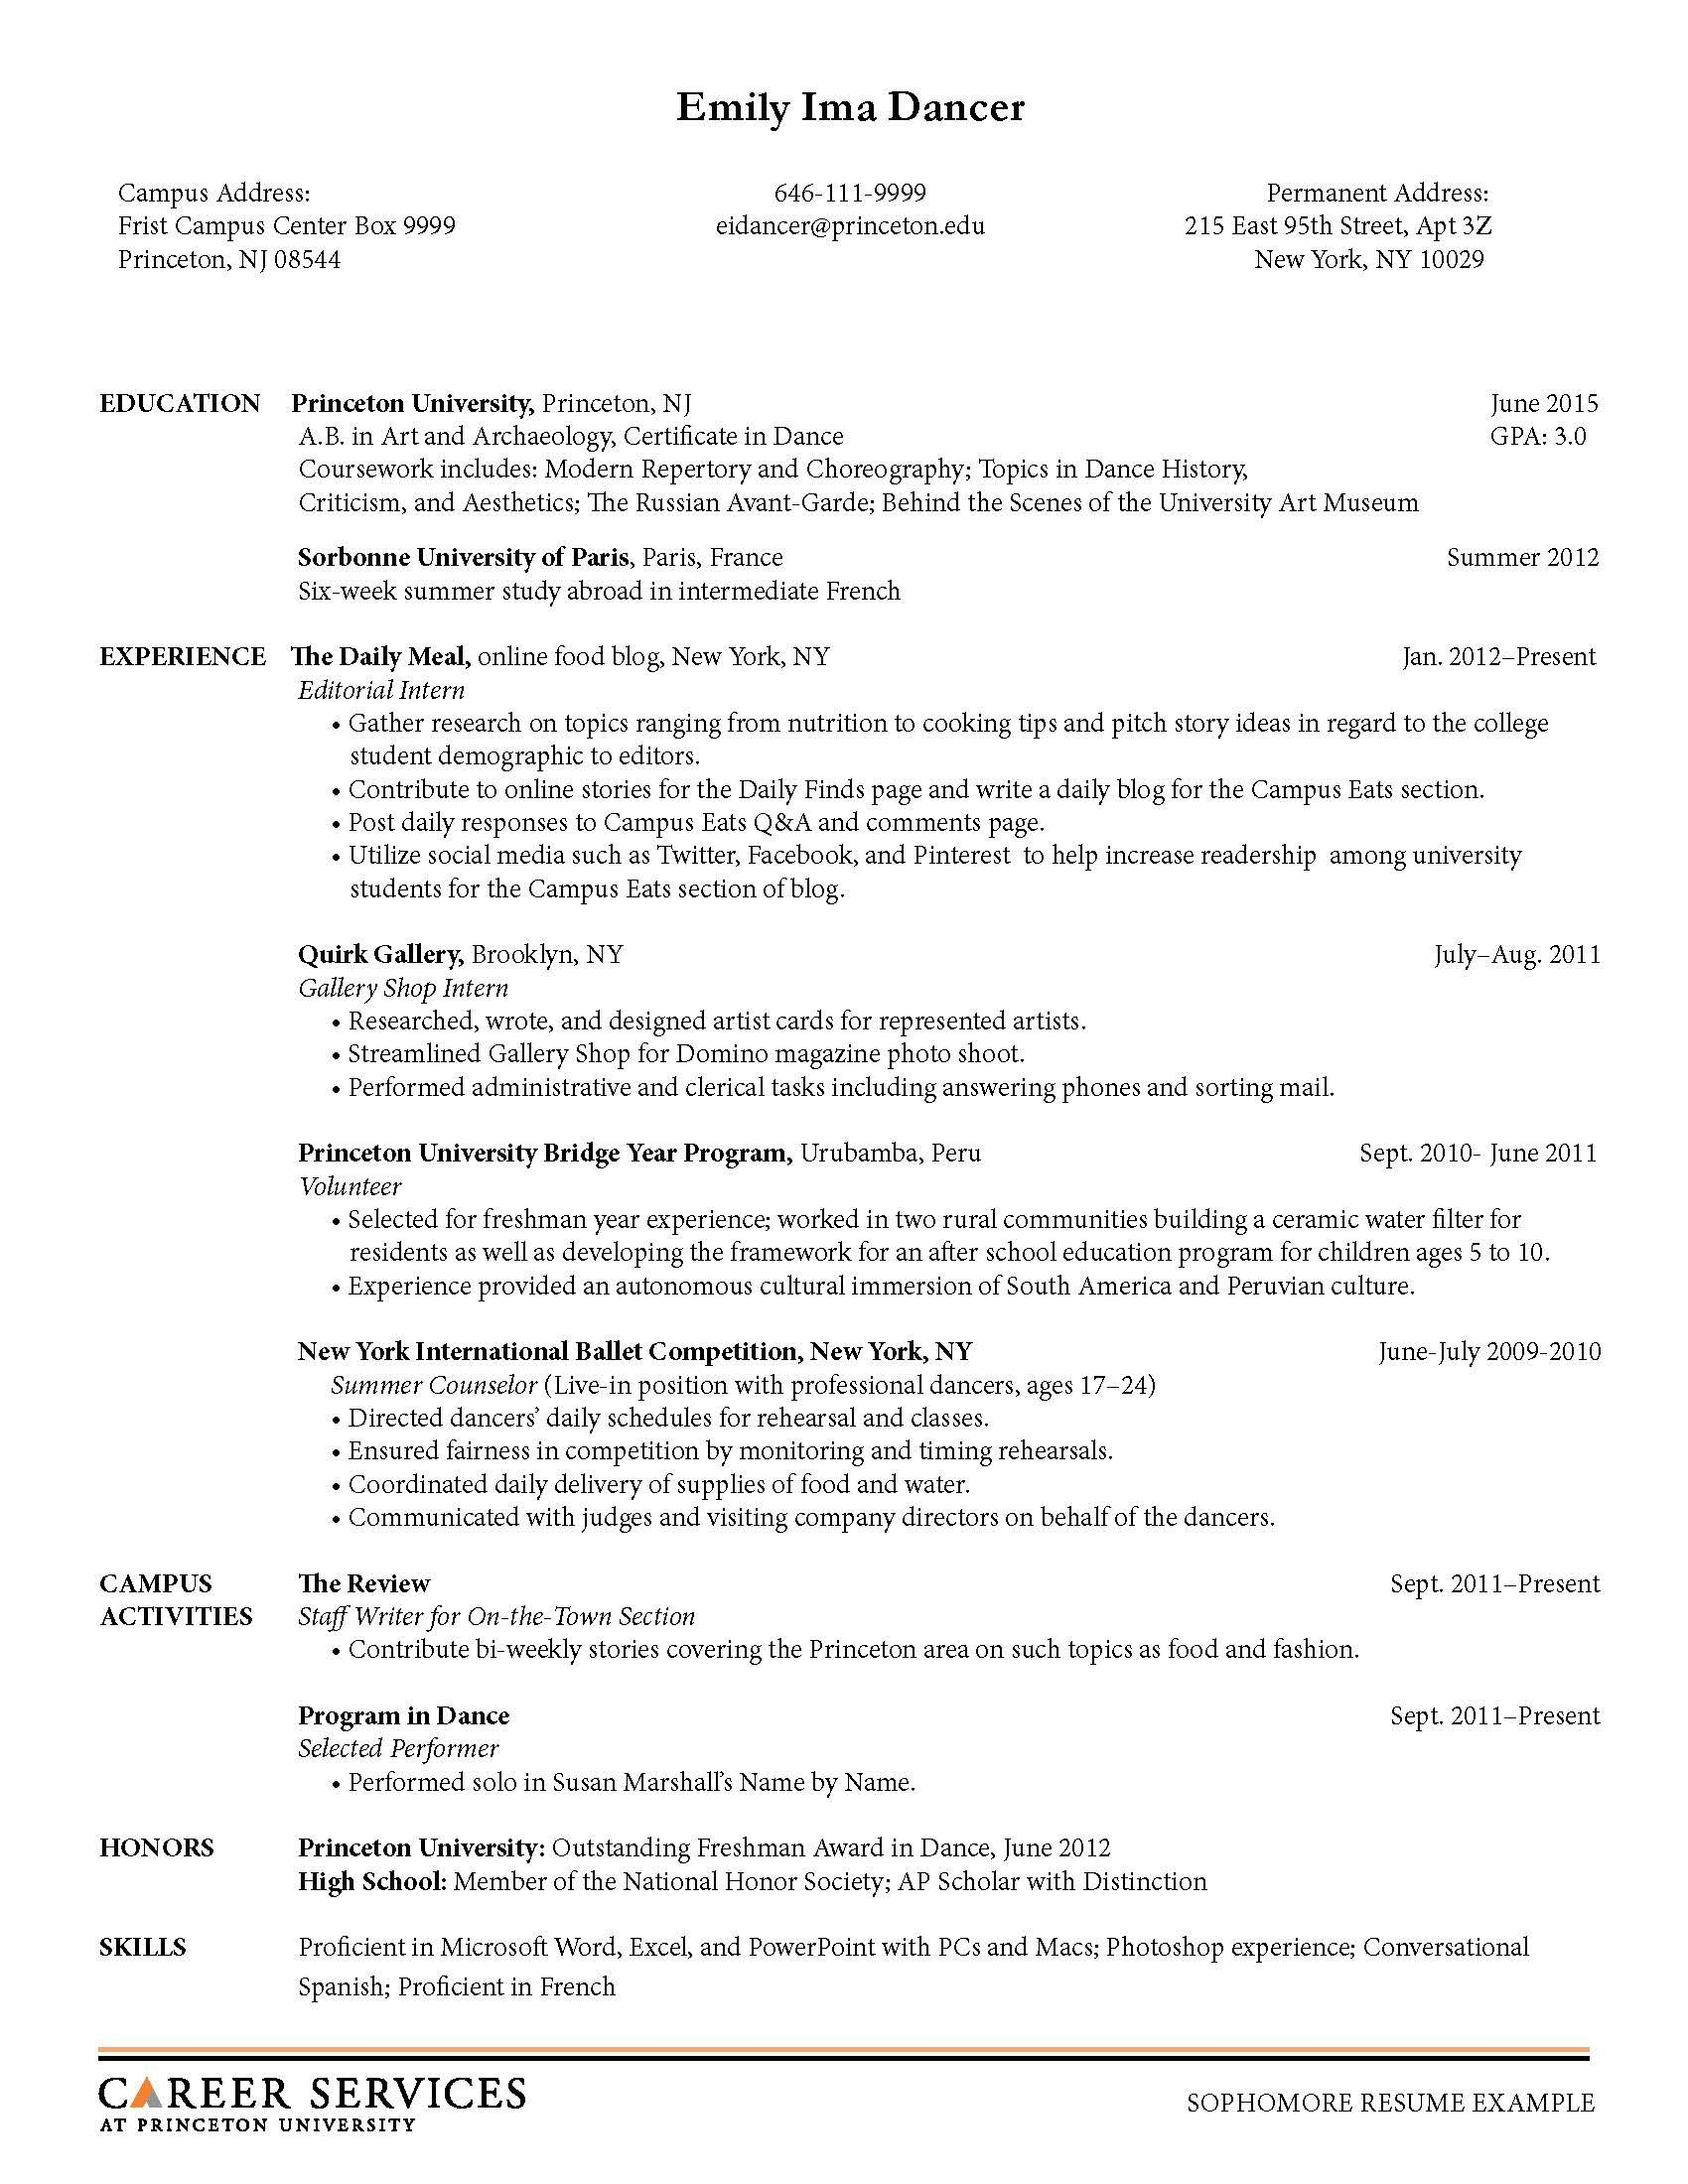 Opposenewapstandardsus  Picturesque Sample Resume Resume And Career On Pinterest With Fascinating Ministry Resume Template Besides Billing And Coding Resume Furthermore Mft Resume With Easy On The Eye Skills For Receptionist Resume Also Objective For Business Resume In Addition What To Include On Your Resume And Soccer Coaching Resume As Well As College Admission Resume Examples Additionally Medical Resume Writing Services From Pinterestcom With Opposenewapstandardsus  Fascinating Sample Resume Resume And Career On Pinterest With Easy On The Eye Ministry Resume Template Besides Billing And Coding Resume Furthermore Mft Resume And Picturesque Skills For Receptionist Resume Also Objective For Business Resume In Addition What To Include On Your Resume From Pinterestcom